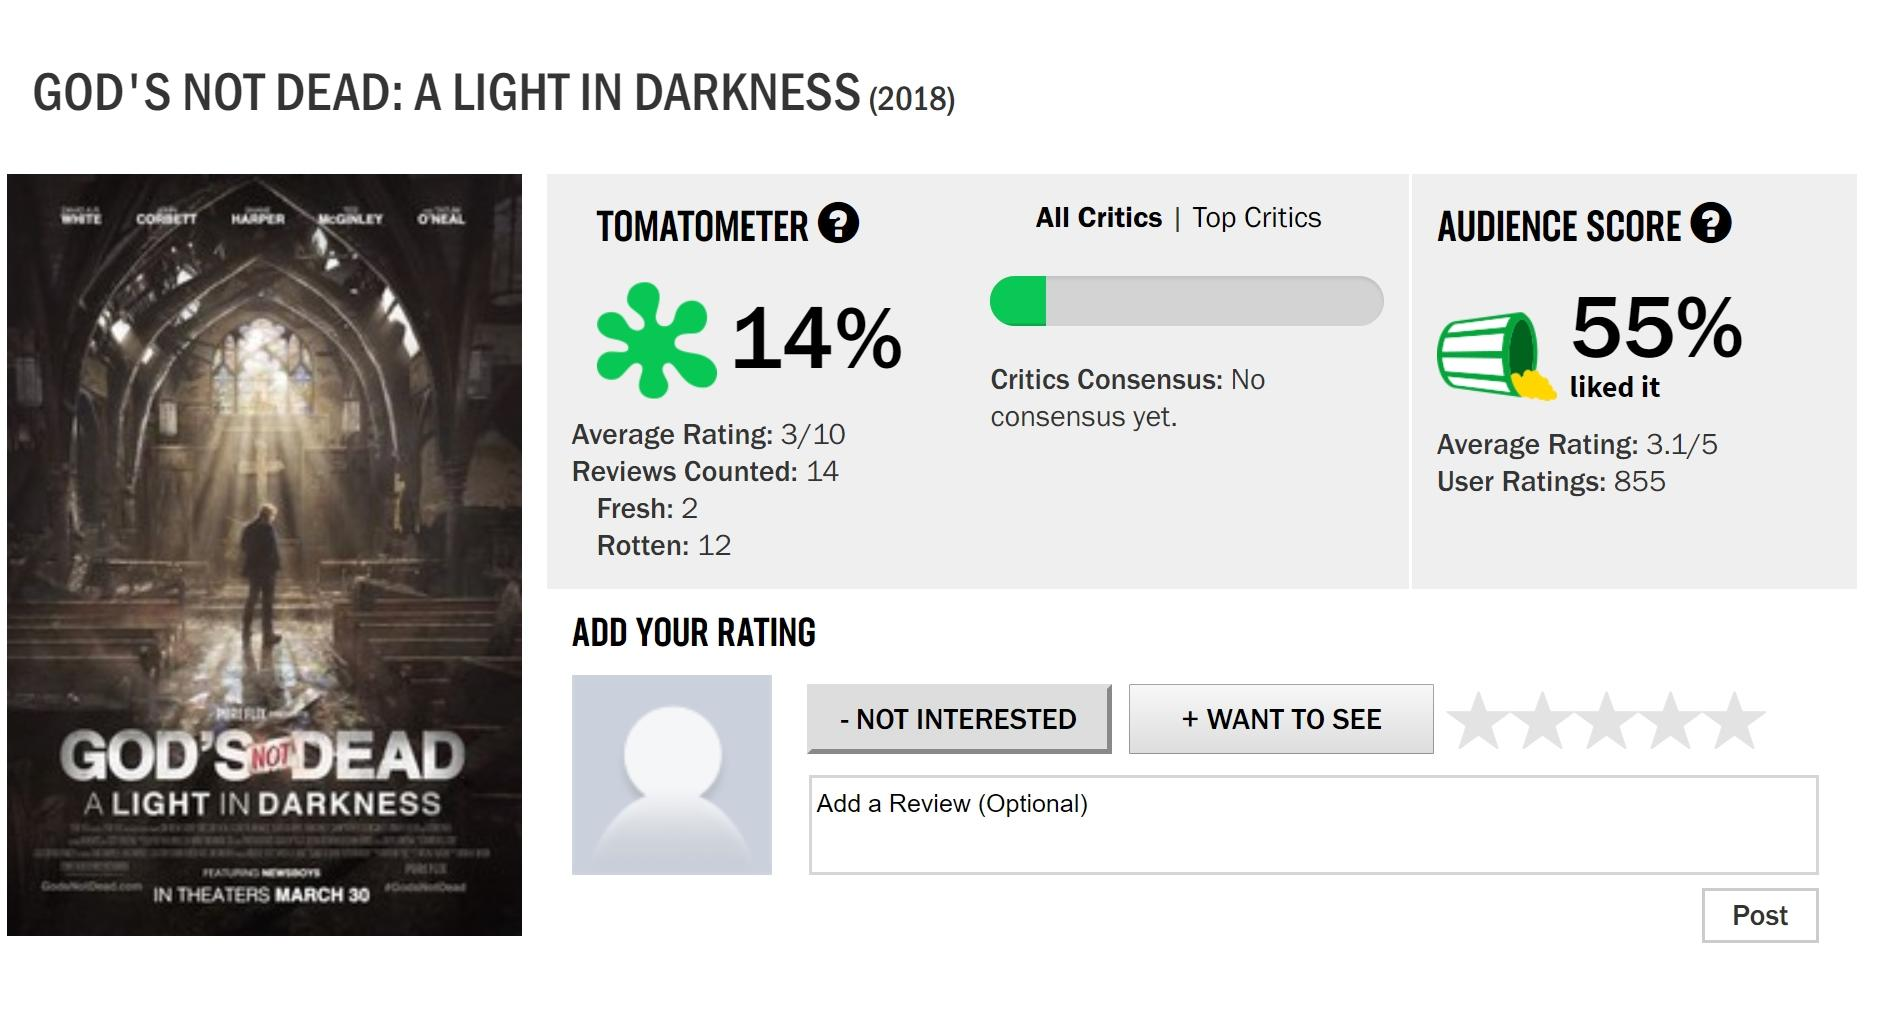 Fake News: Rotten Tomatoes Did NOT Introduce New Negative Scores For Faith-Based Films